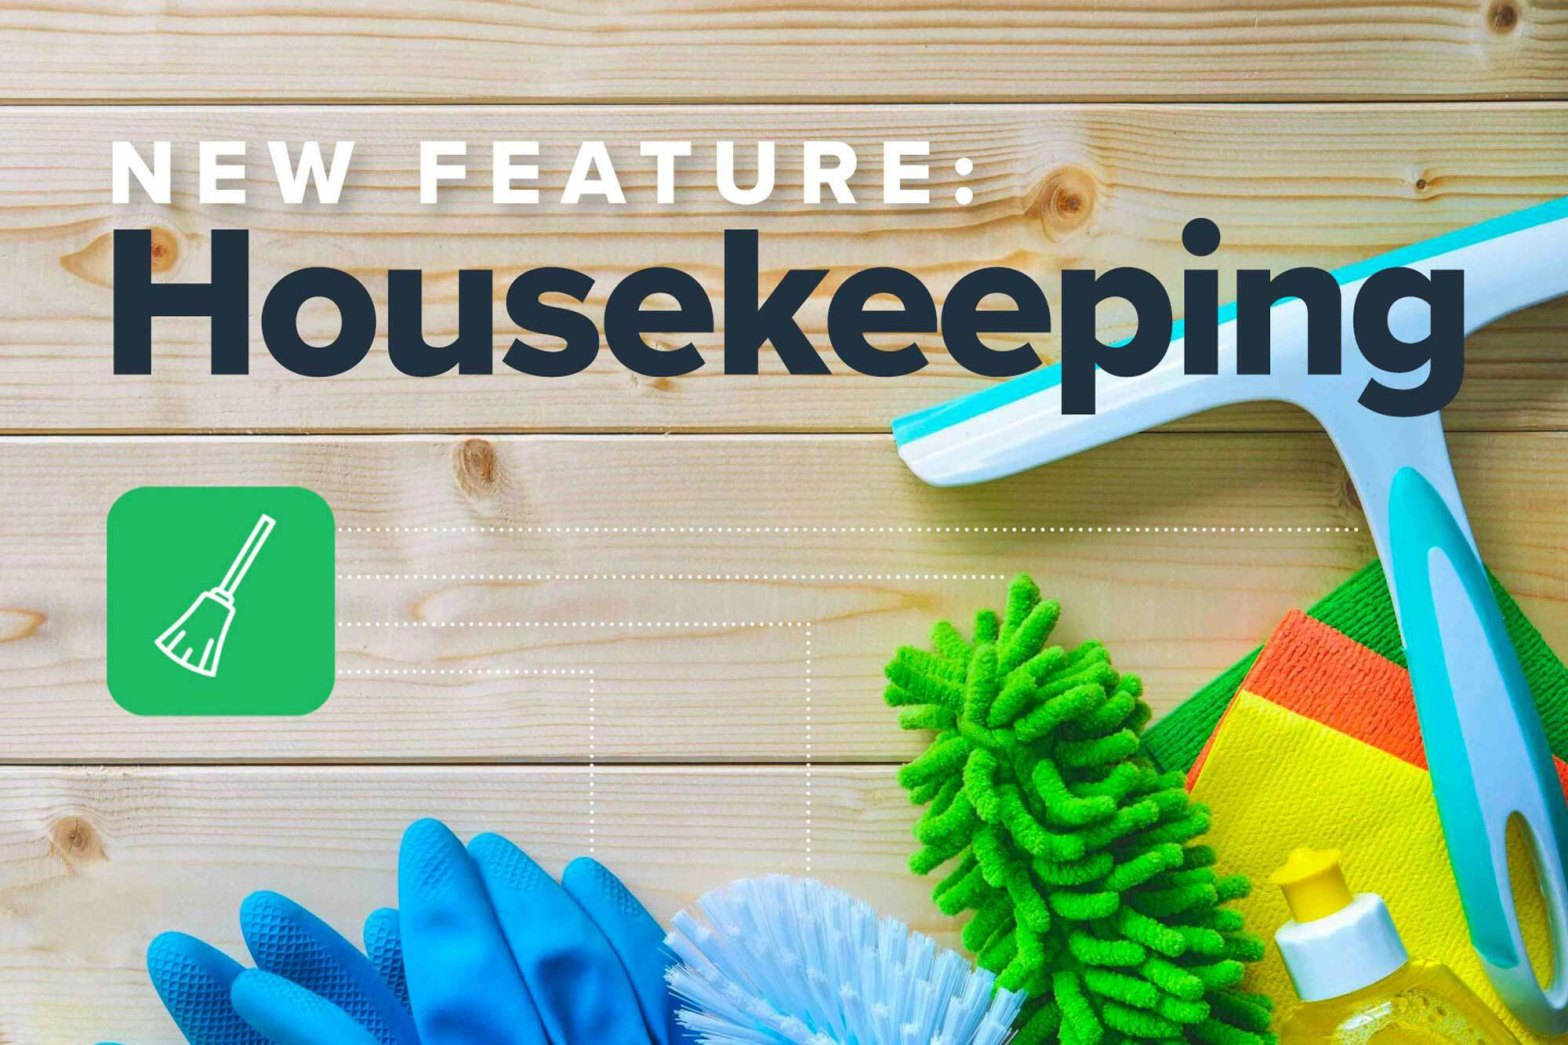 Housekeeping icons for software feature